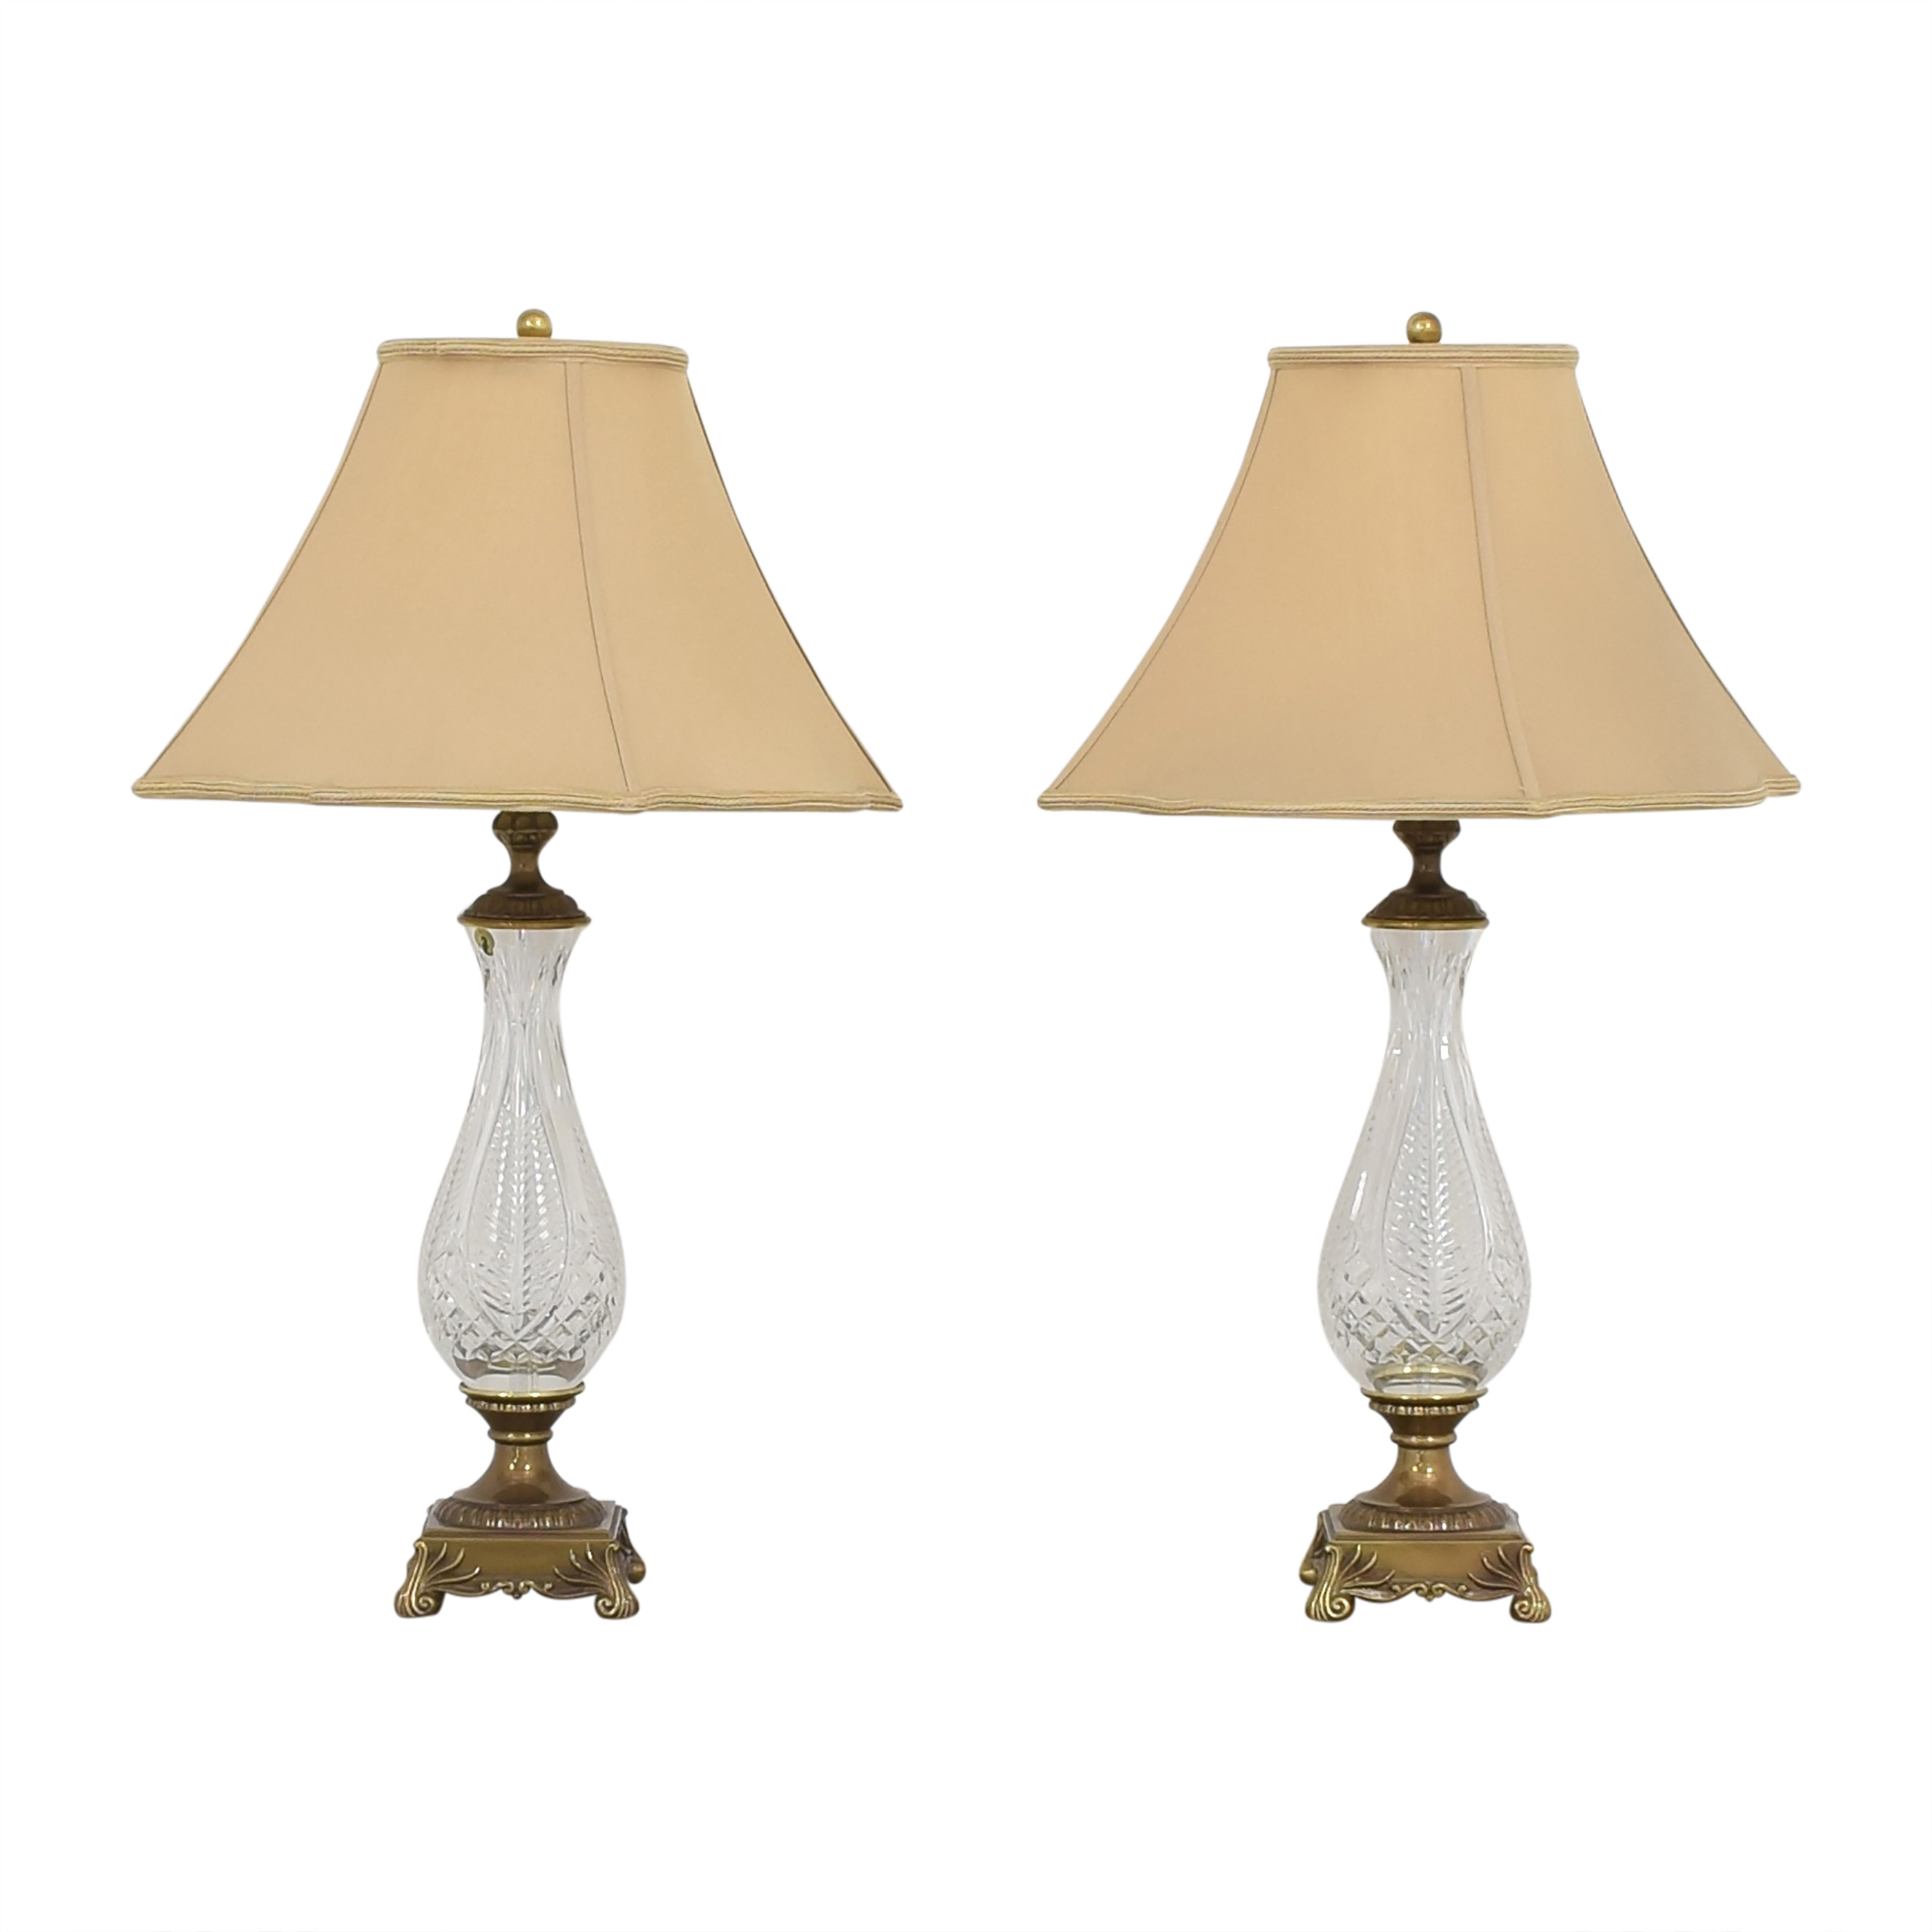 Waterford Waterford Empire Style Table Lamps second hand